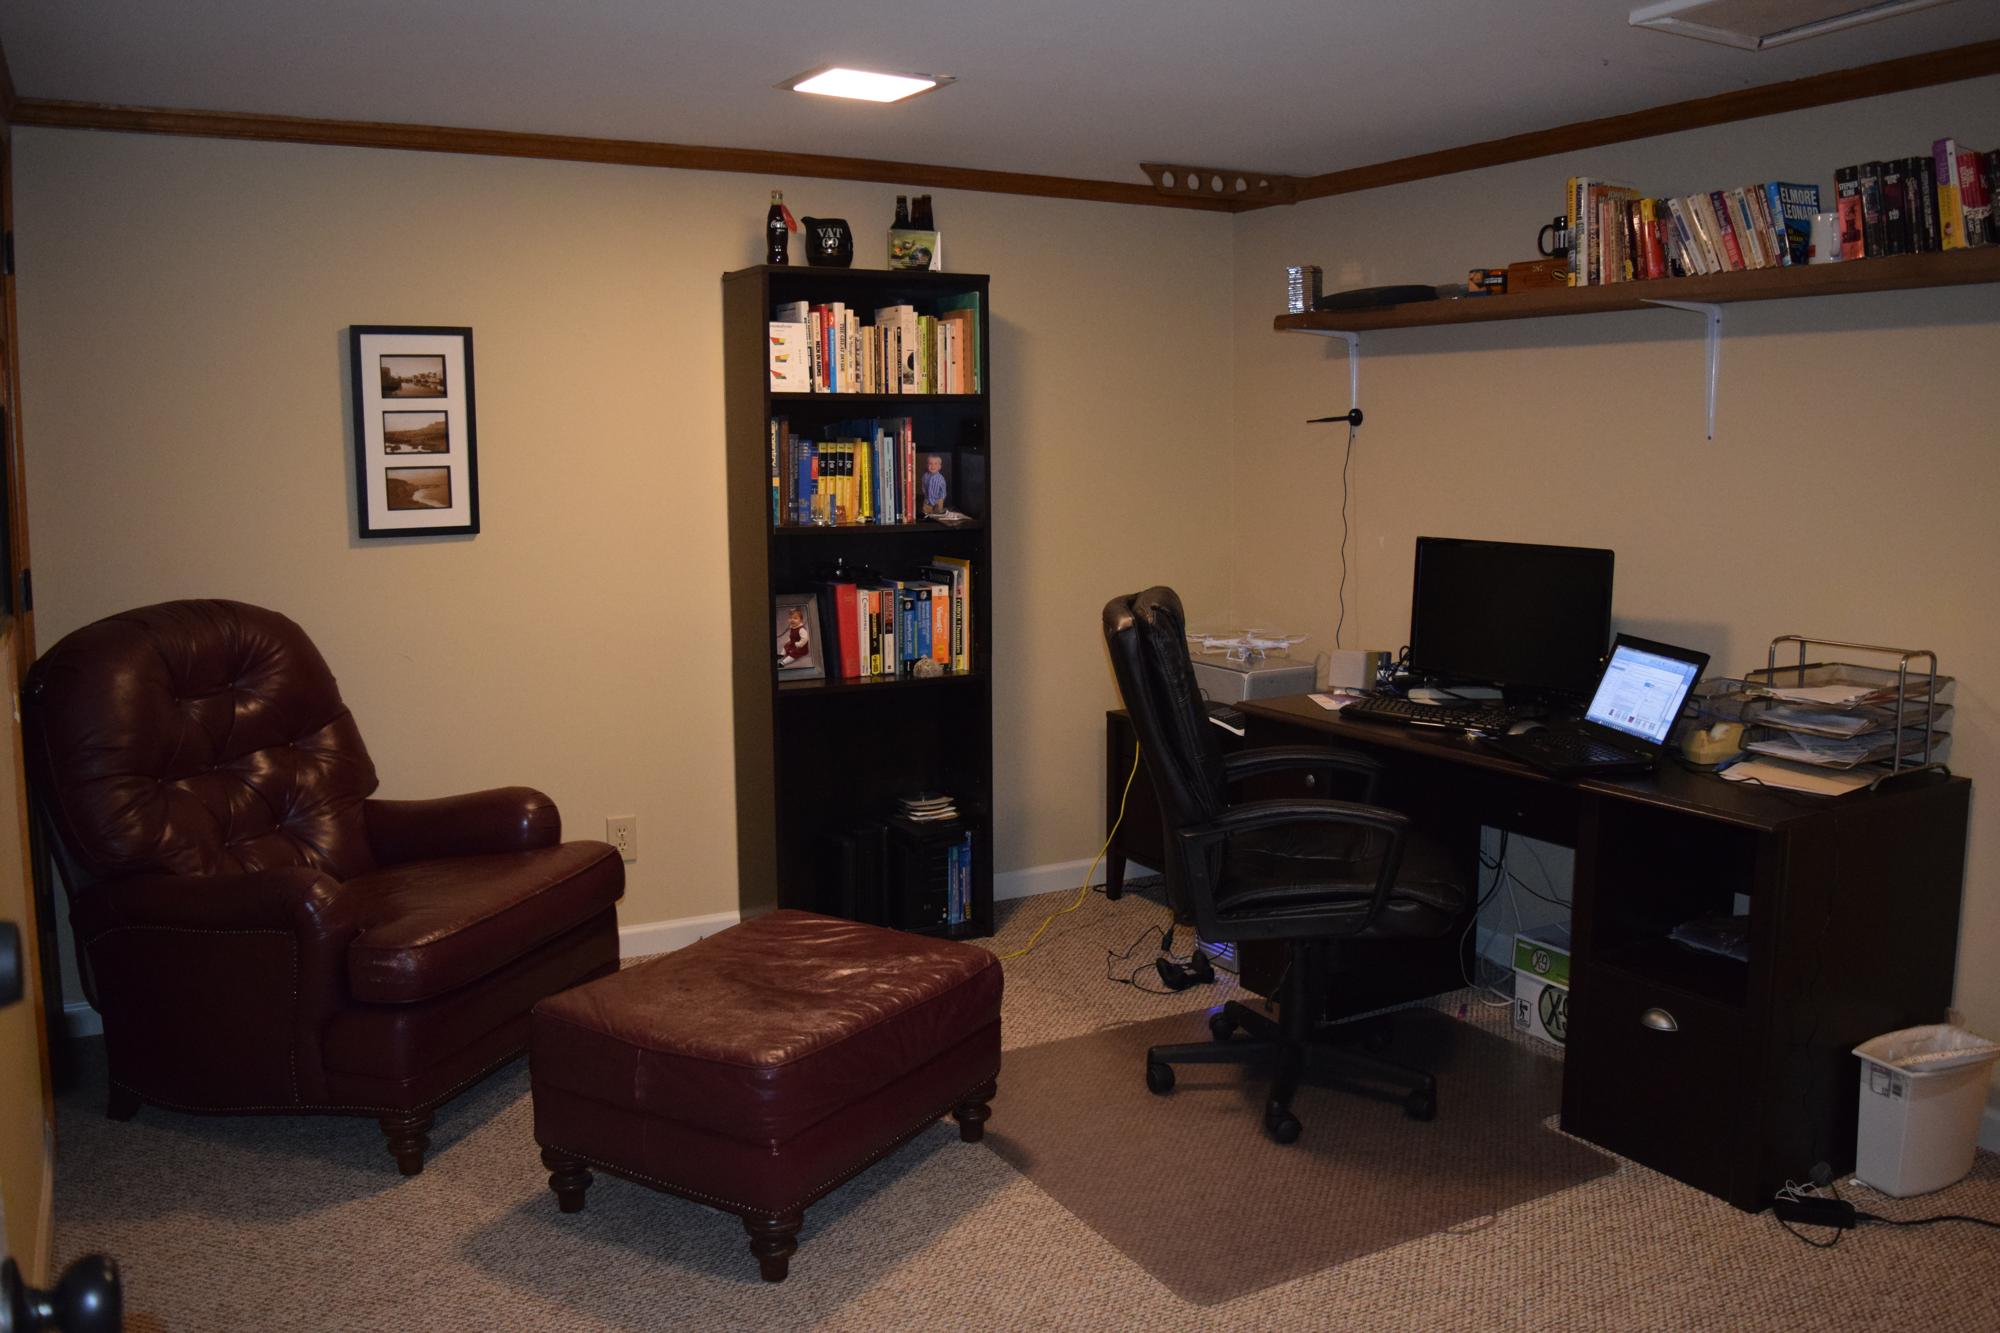 Planning The Home Office Remodel